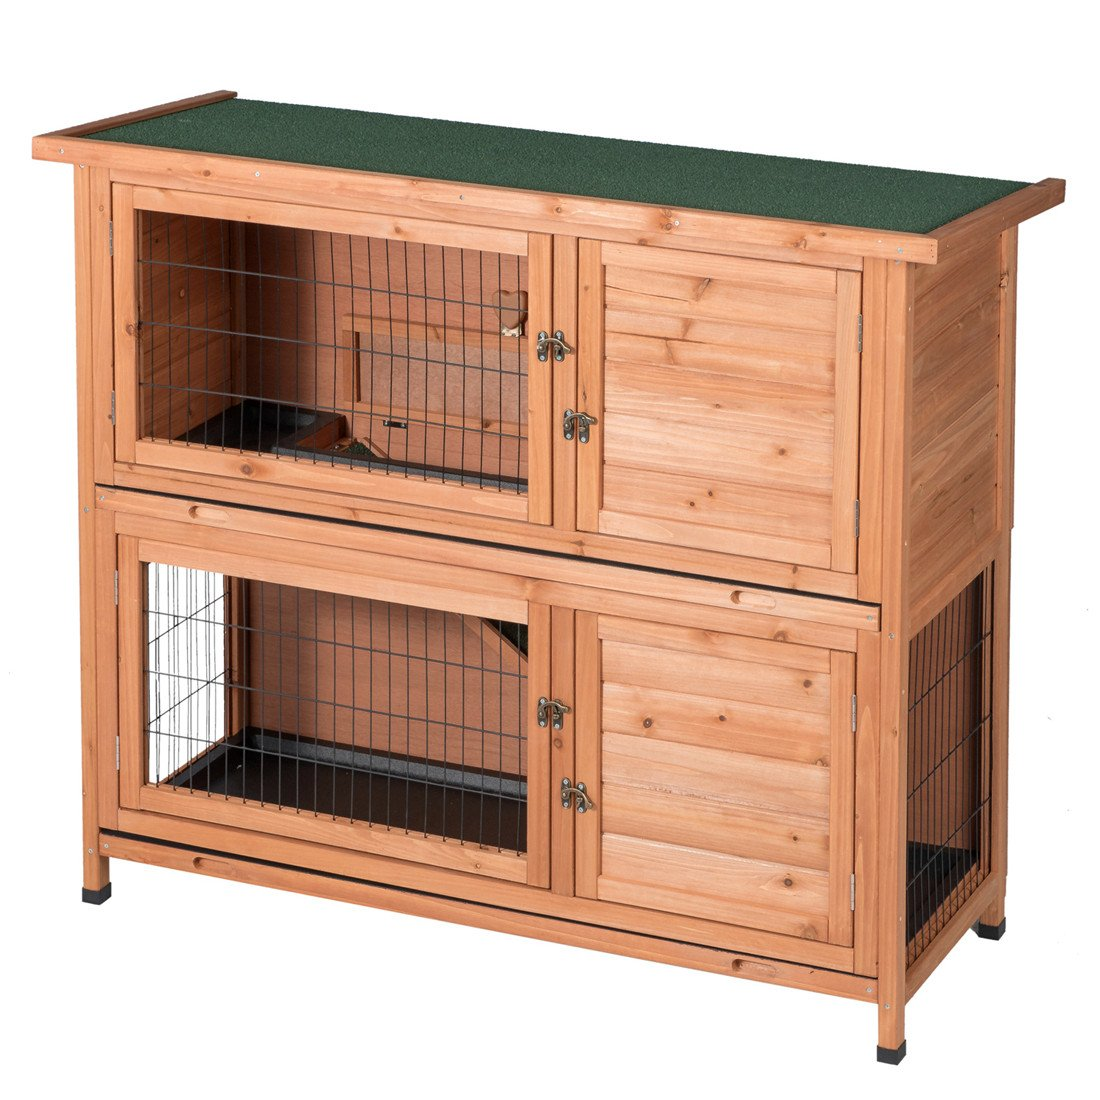 Good Life Two Floors Wooden Outdoor Indoor Bunny Hutch Rabbit Cage Guinea Pig Coop PET House for Small Animals Nature Color PET383 by GOOD LIFE USA